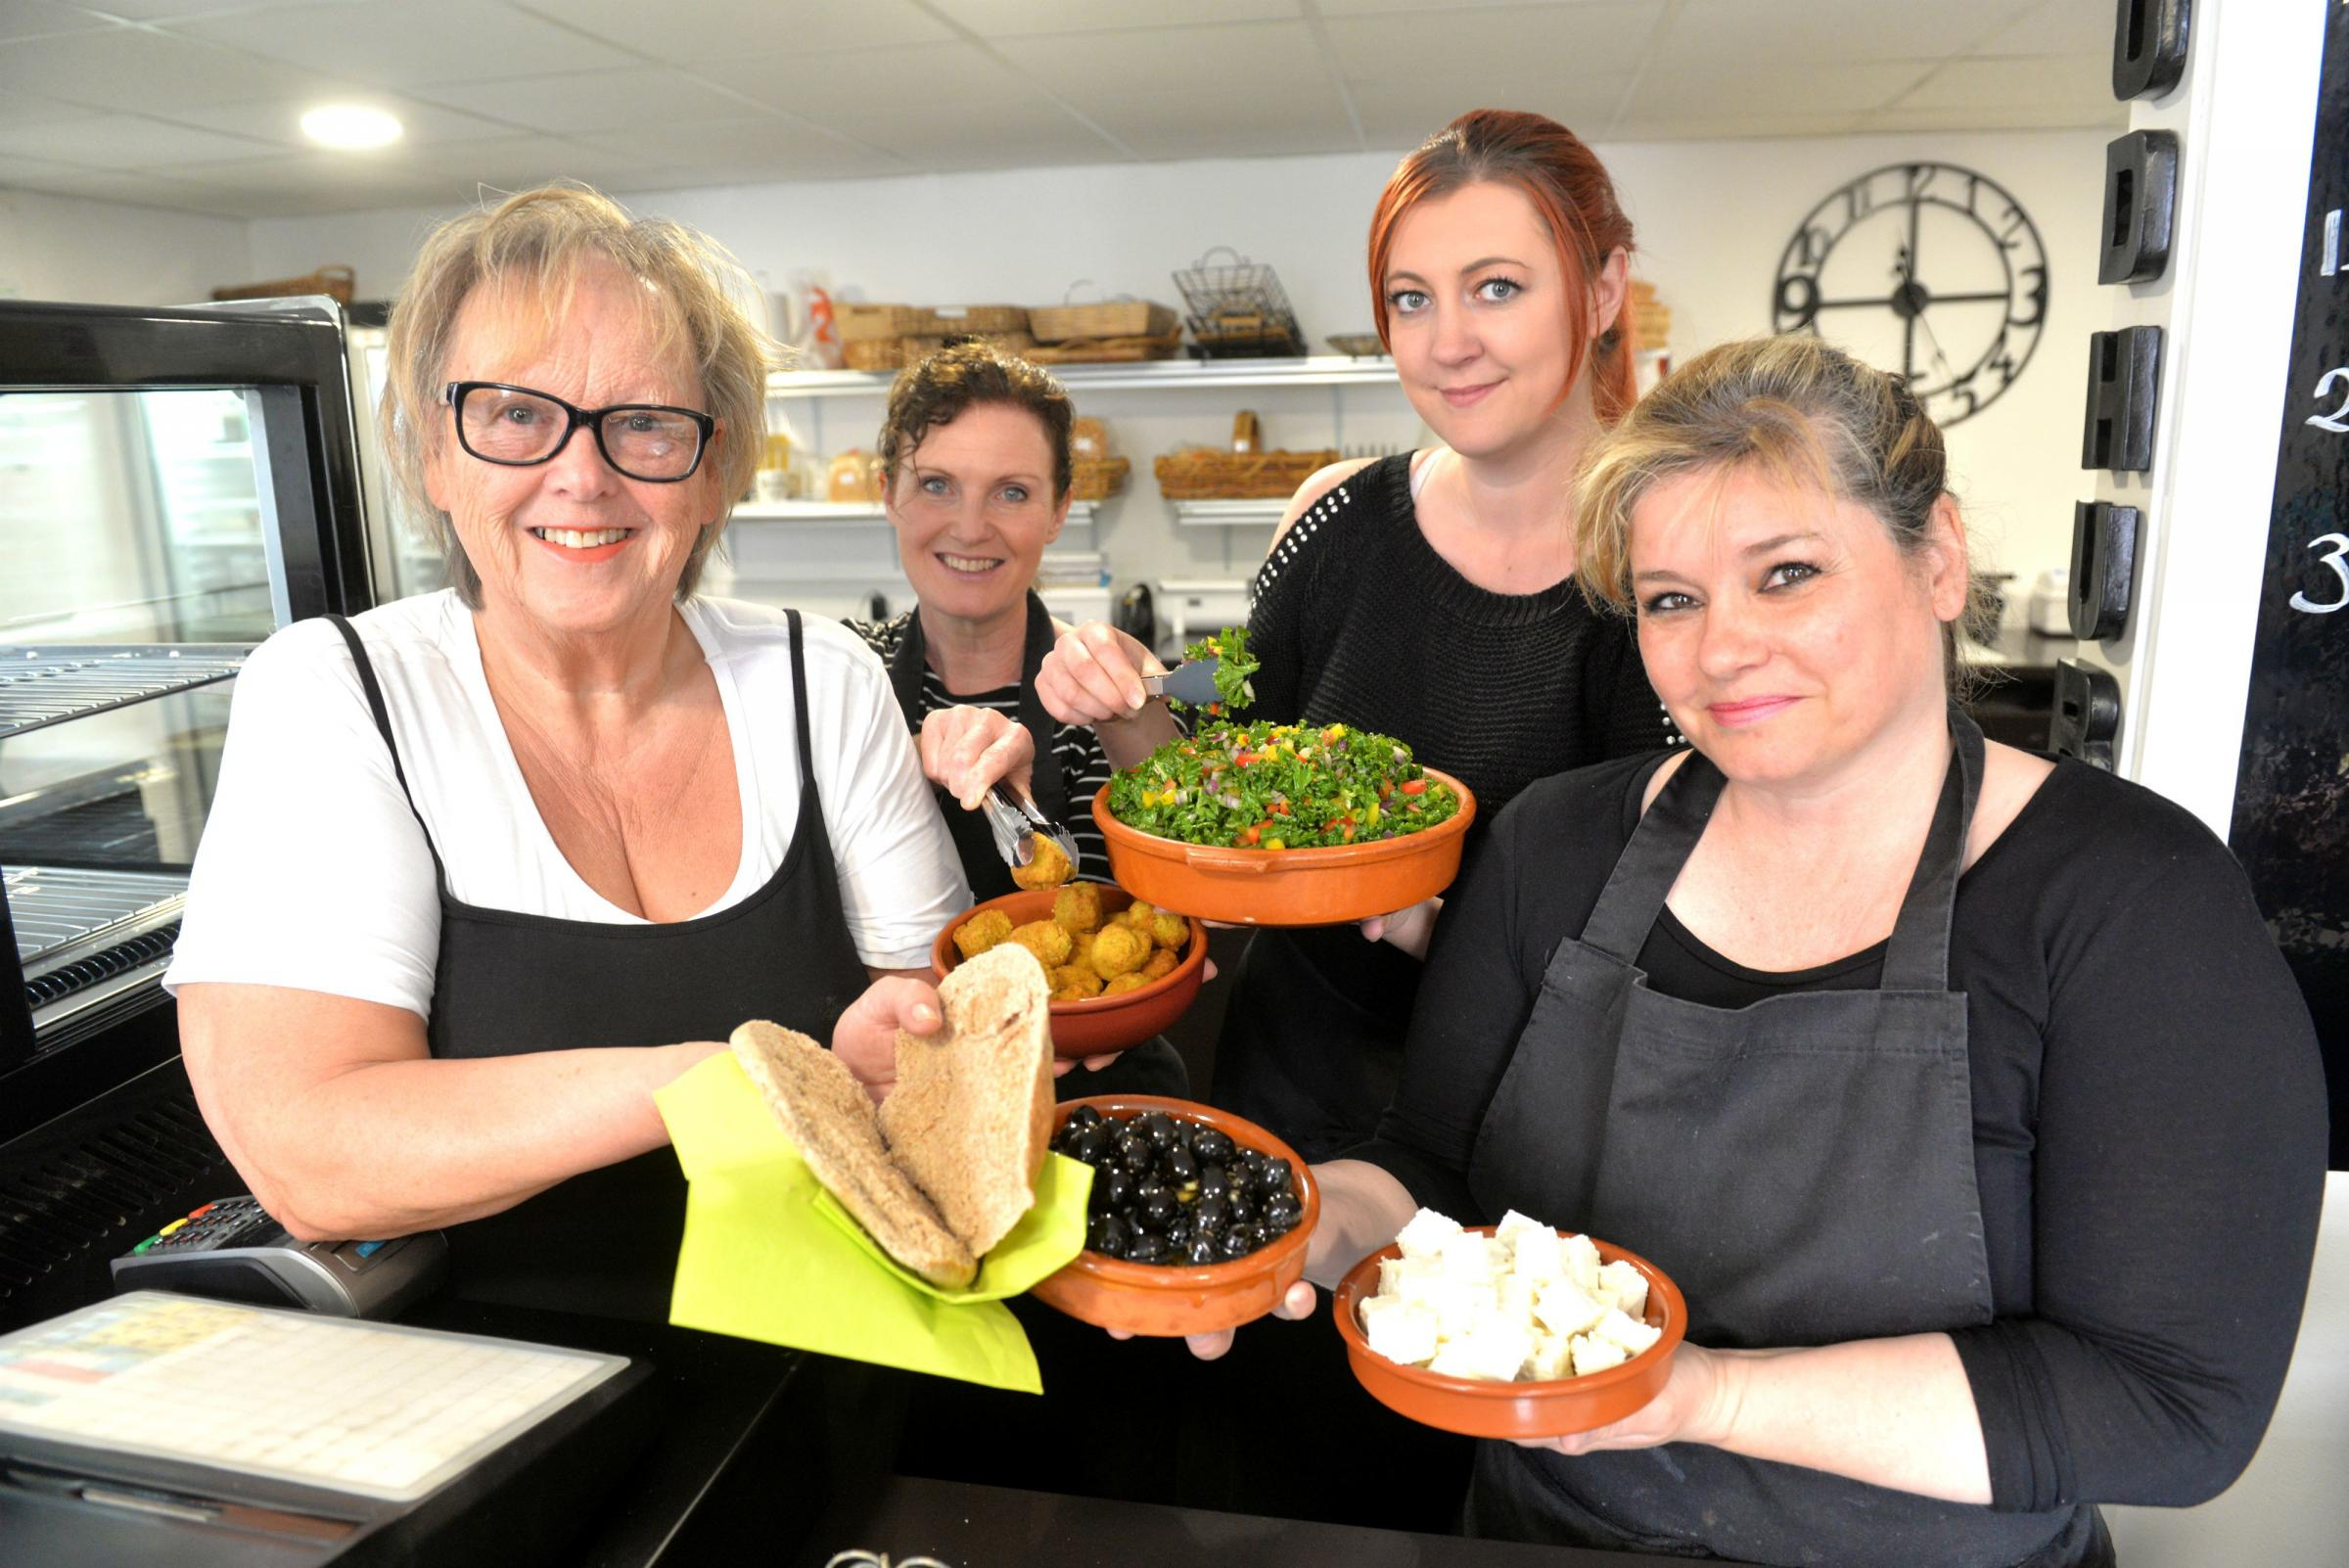 Lisanne Rogers of the Food Hub with her staff Kelly Prowse, Lauren Workman and Kerry Kellengray. The Foodhub can be contacted on 01454 318555 from 9am-2pm Mon-Fri